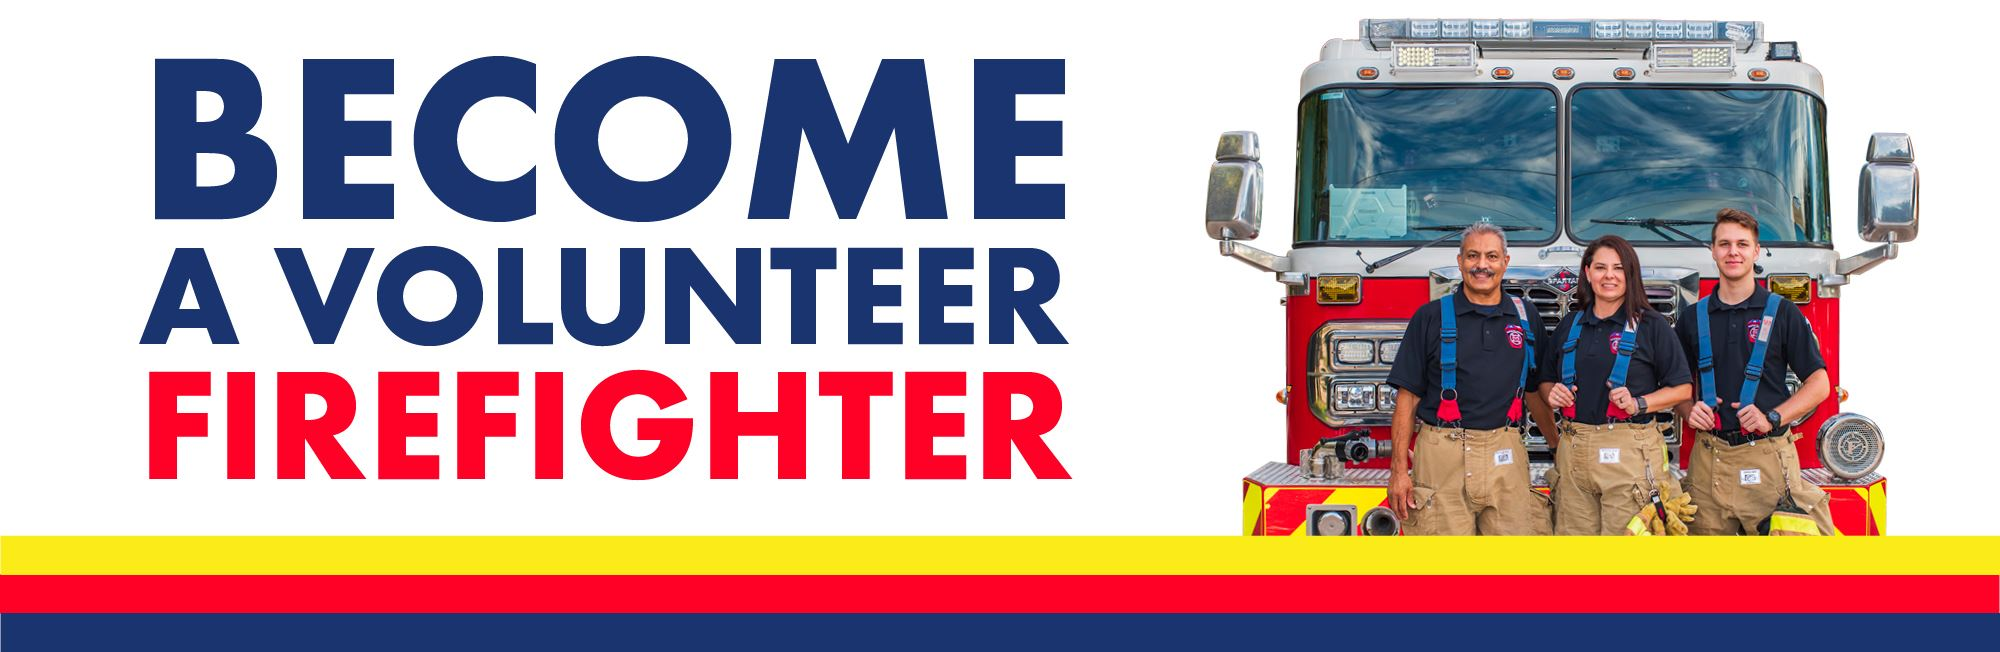 become a volunteer firefighter